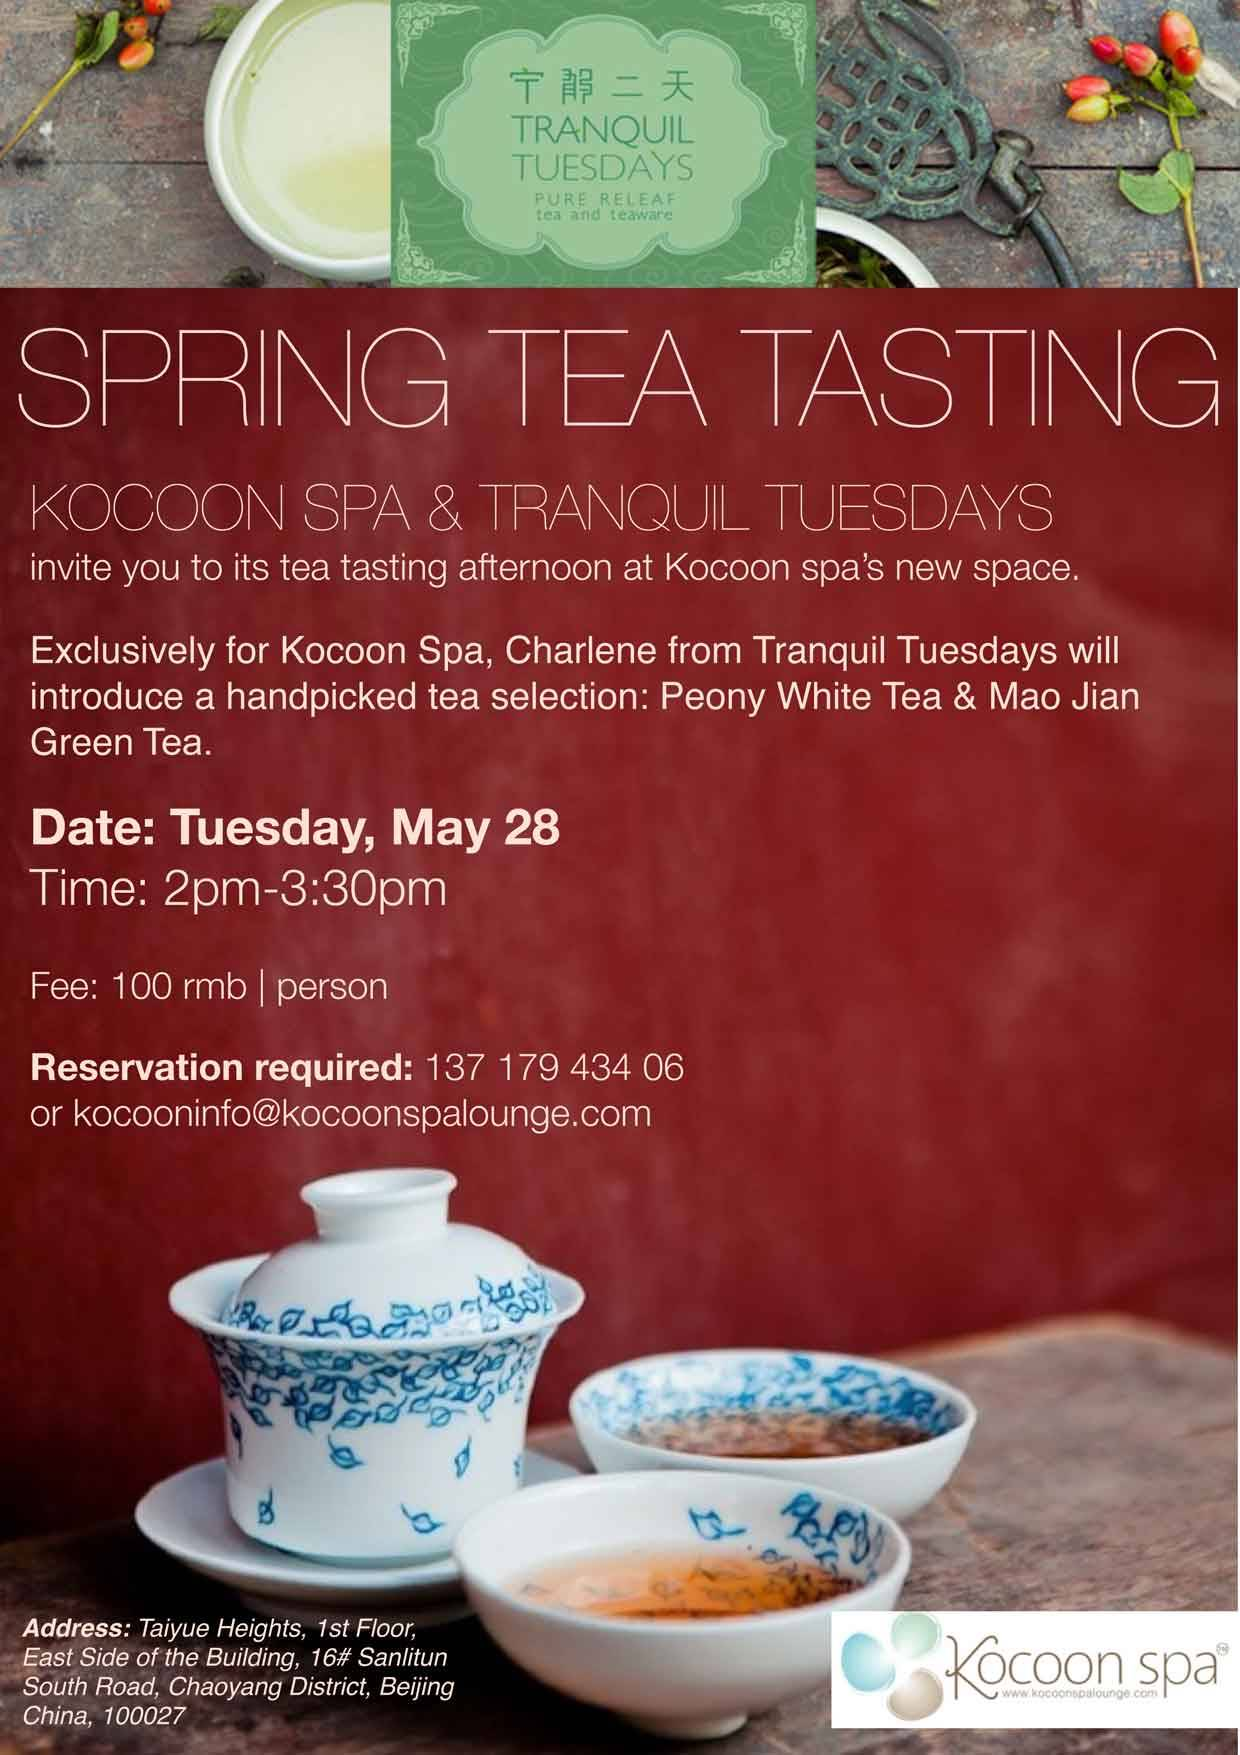 Spring Tea Tasting with Kocoon Spa To reserve your spot today for this fun and informative tea tasting event at Kocoon Spa, please email kocooninfo@kocoonspalounge.com. __________________________________________________________ If you enjoyed this article, sign up for Tranquil Tuesdays' newsletter to  Explore the stories behind each of Tranquil Tuesdays teas and teaware Travel with Tranquil Tuesdays seeking the best teas and teaware in China Learn the historical and cultural elements that make Chinese tea and teaware so unique Sign up for Tranquil Tuesdays' newsletter now!